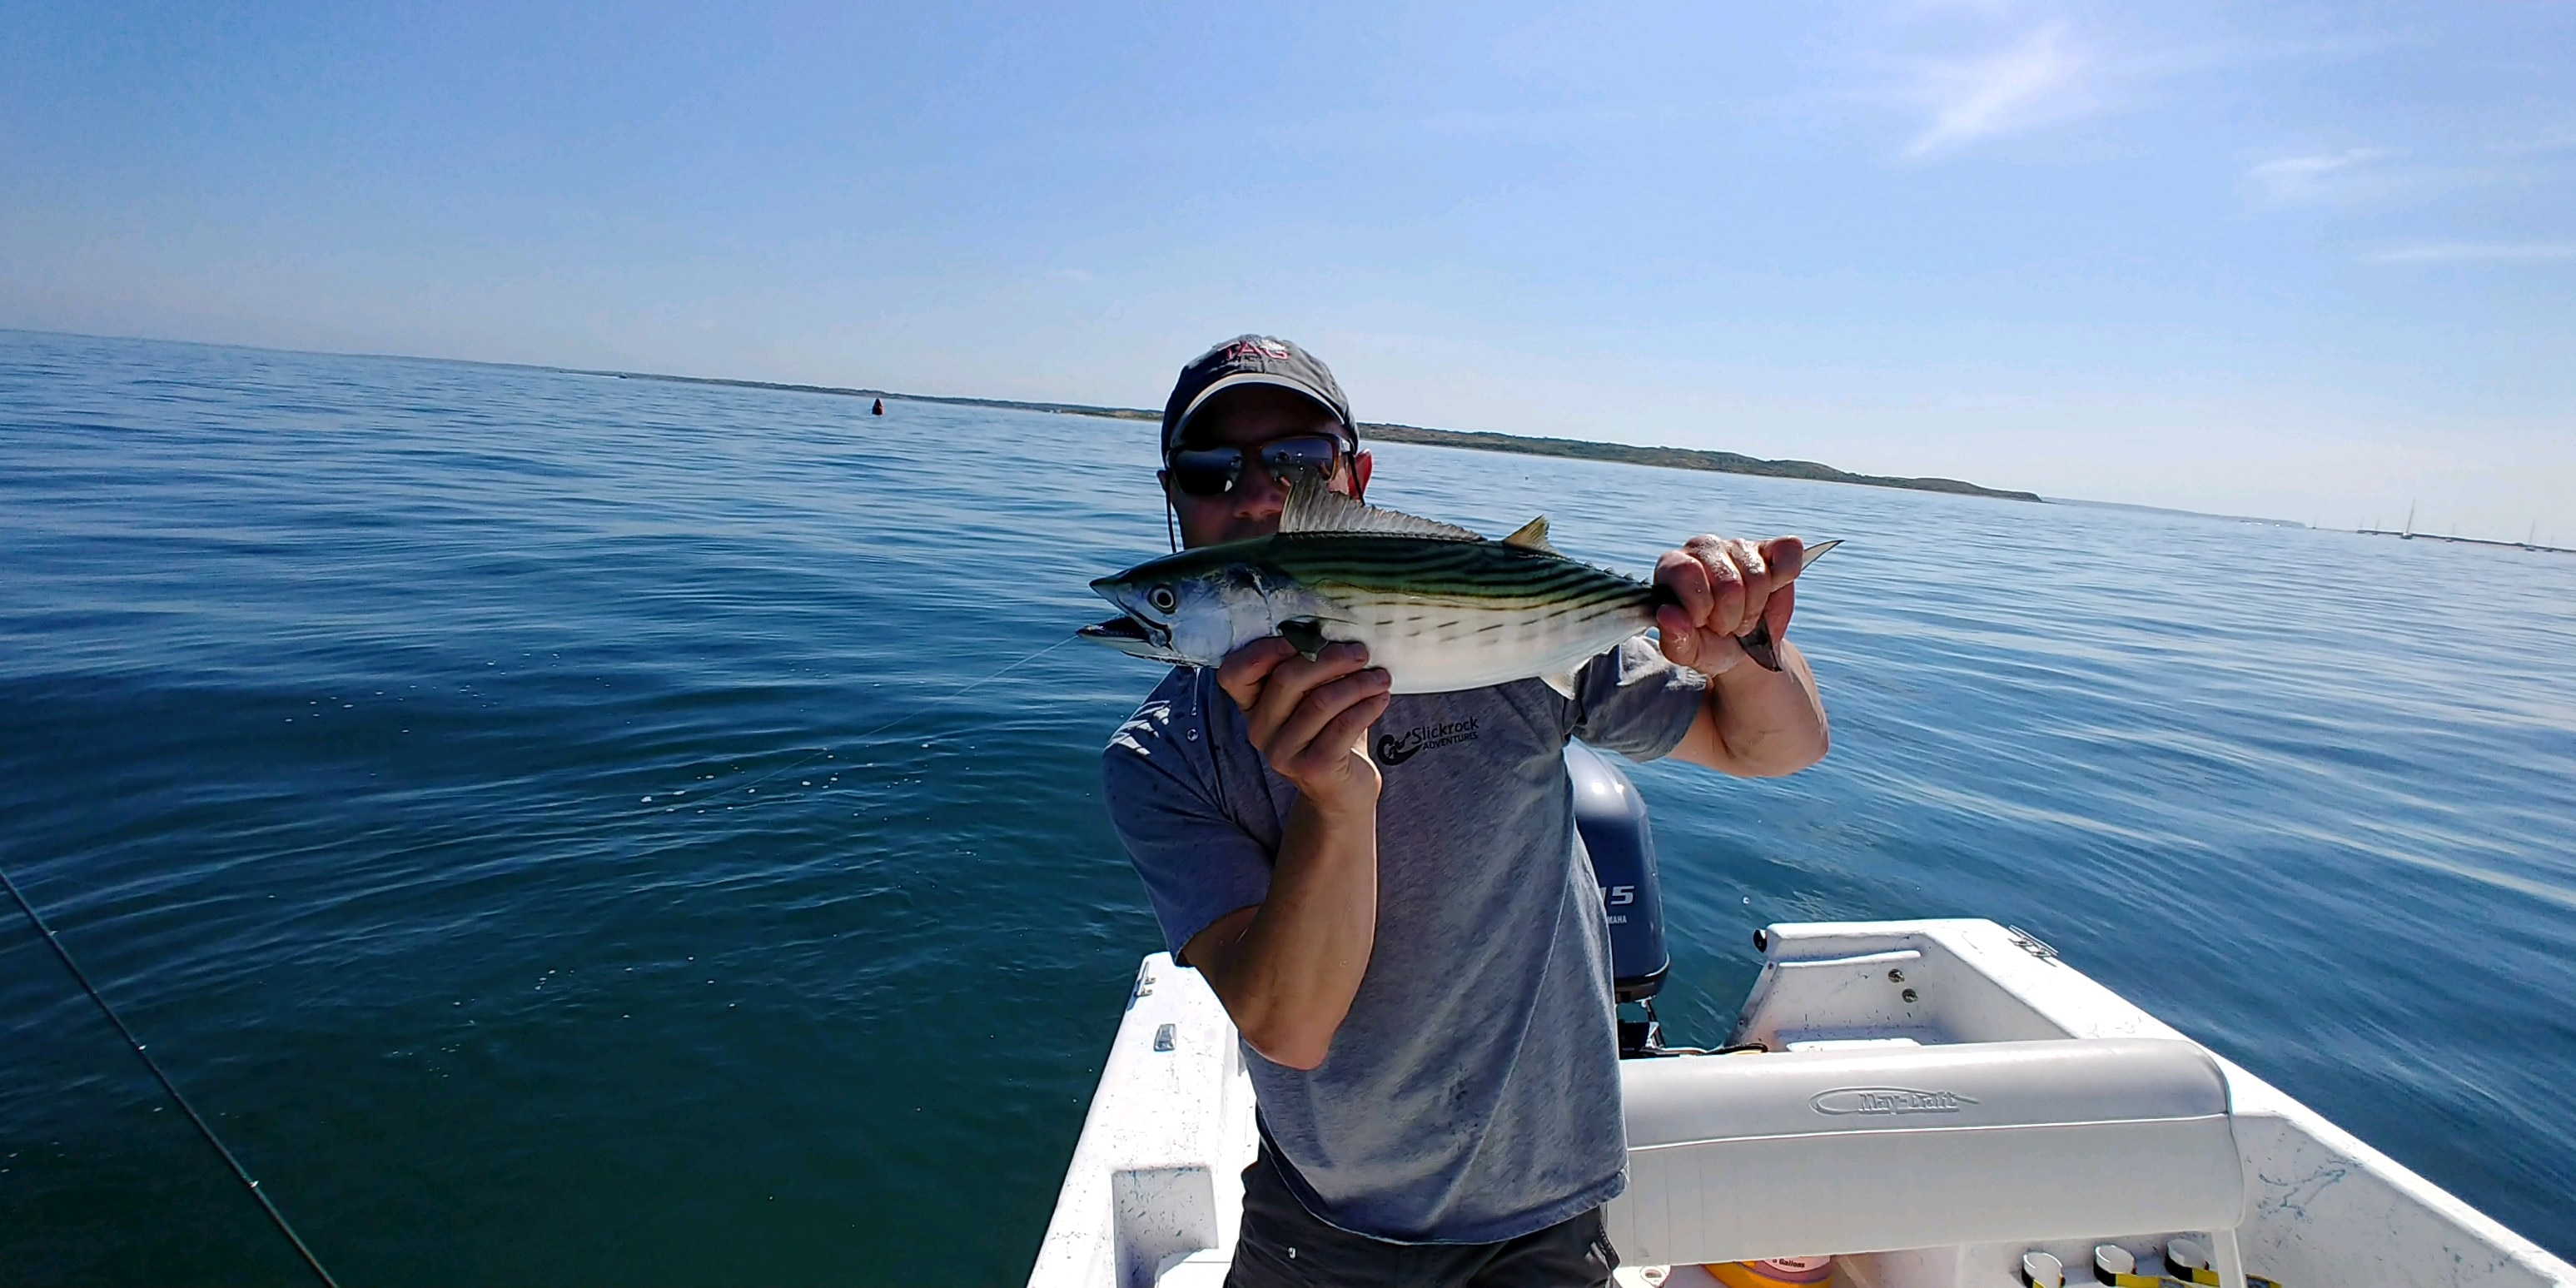 An Atlantic bonito caught by a recreational angler.